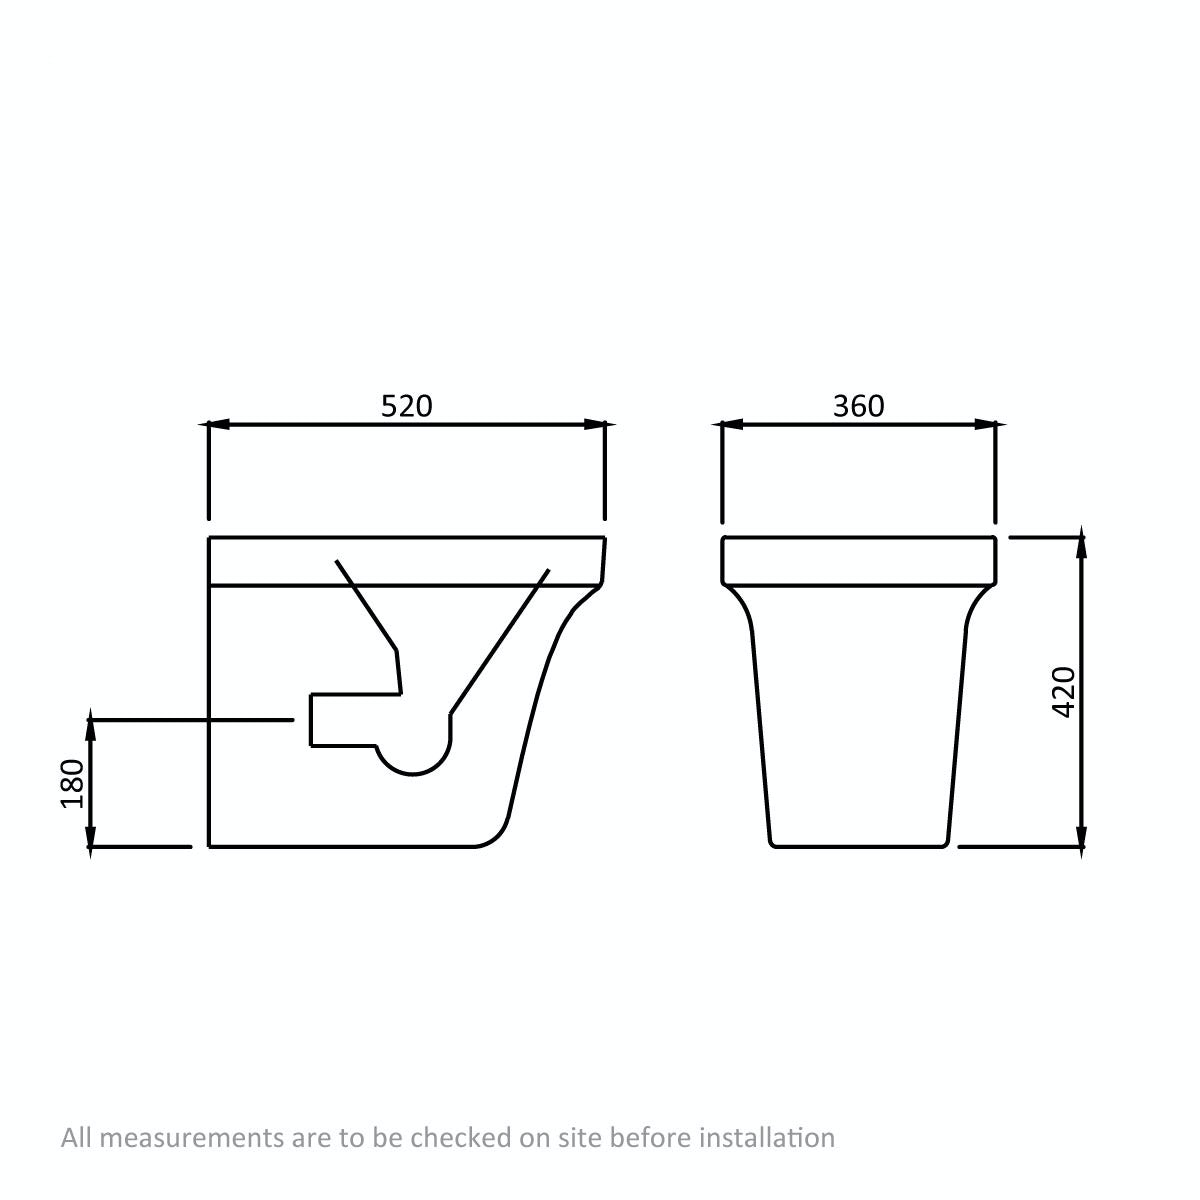 Dimensions for Mode Ive back to wall toilet inc soft close seat